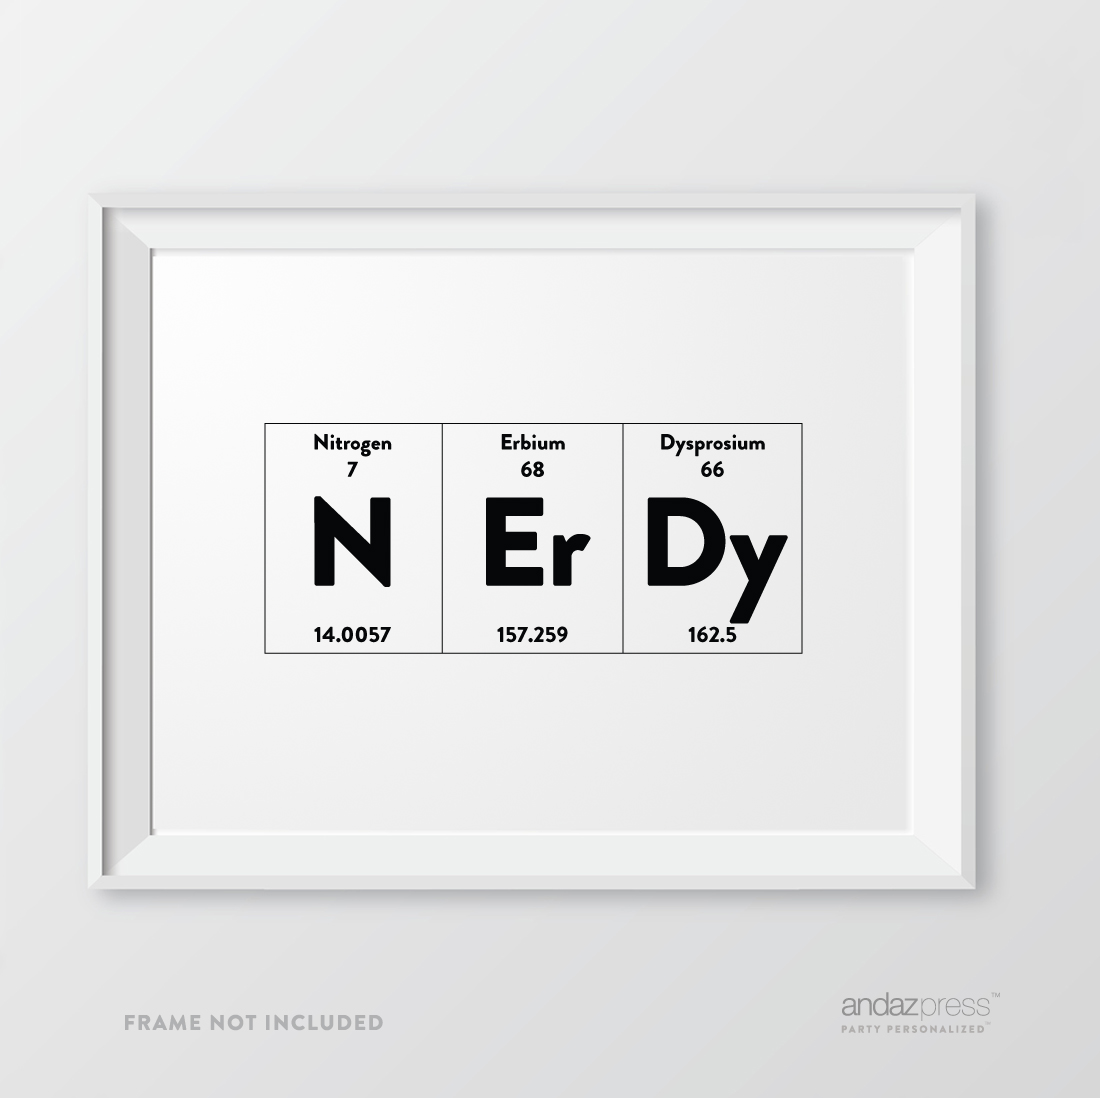 andaz press periodic table of elements wall art decor 85 x 11 inch 1 pack geeky scientific chemistry physics science print typographic calligraphy - 8 5 X 11 Periodic Table Of Elements